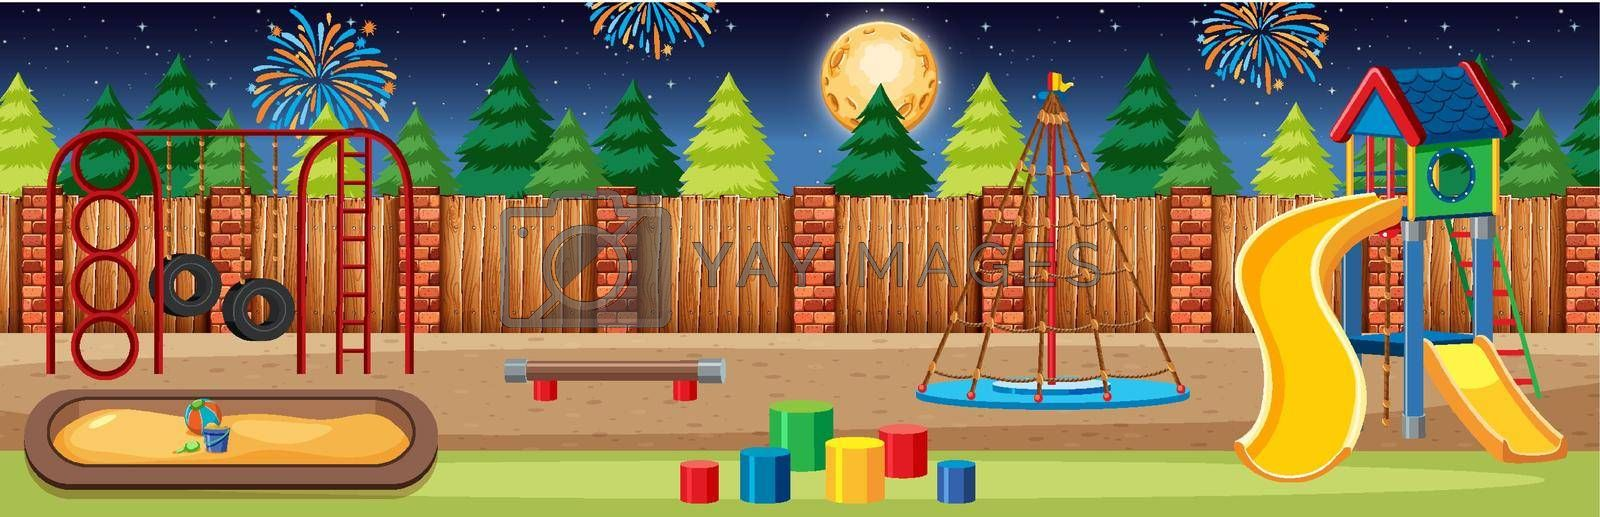 Kids playground in the park with big moon and fireworks in the sky at night cartoon style panorama scene illustration